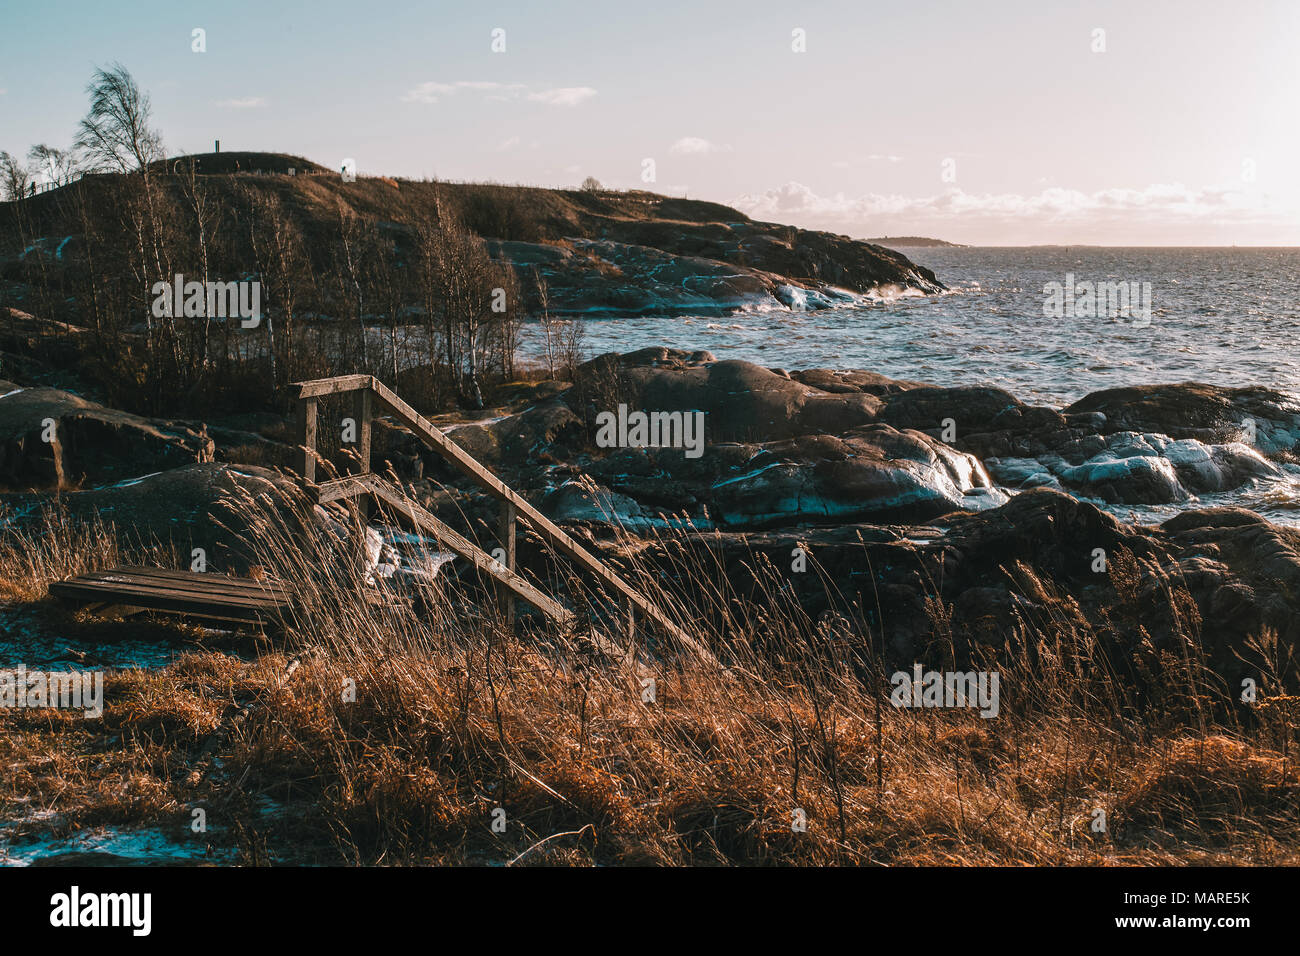 Wooden stairs by the rocky seacoast of Suomelinna island during a windy winter afternoon, Helsinki - Finland - Stock Image